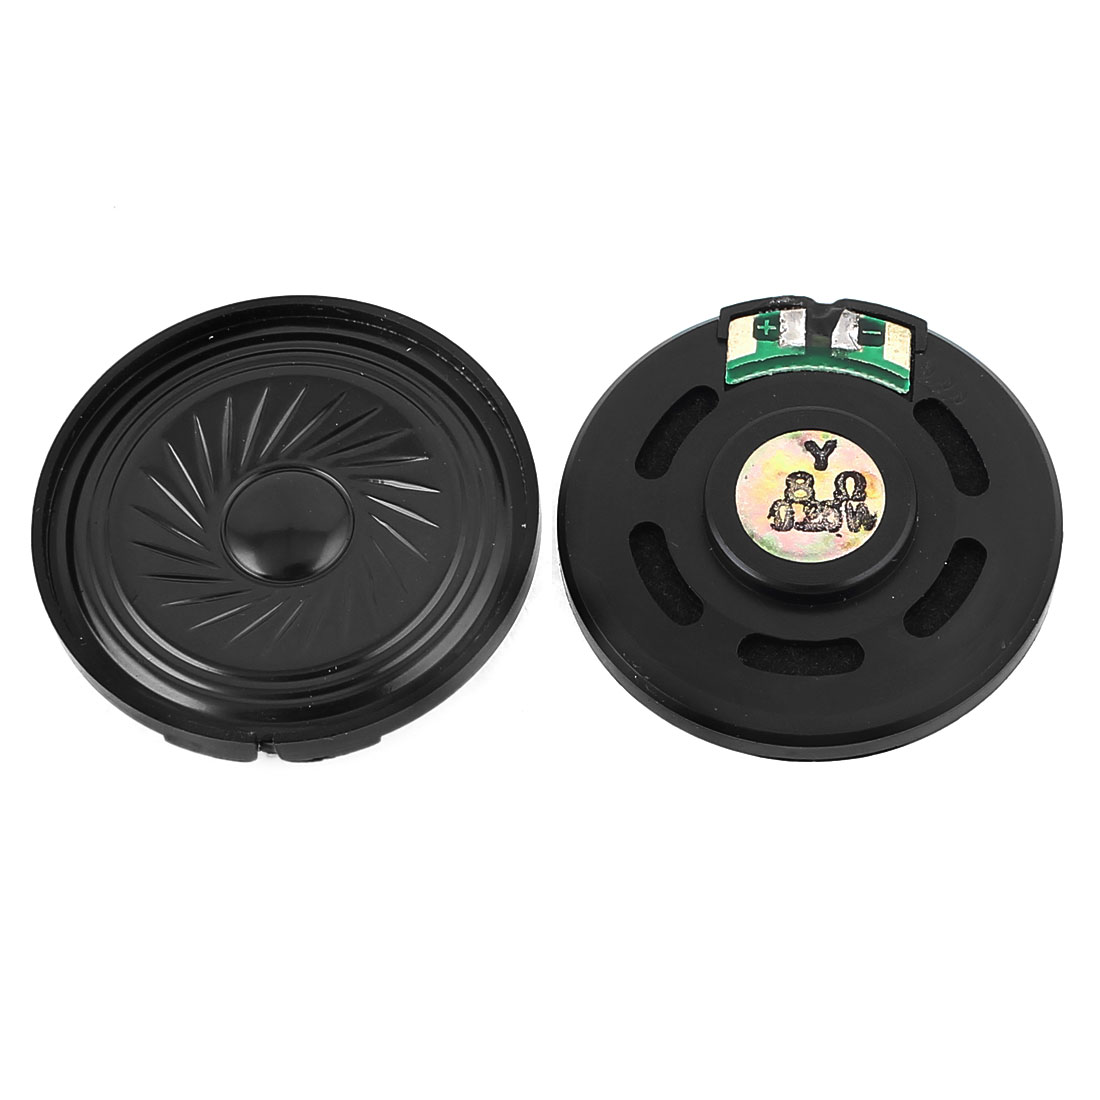 2 Pcs 0.25W 8 Ohm 40mm Round Inside Magnet Electronic Speaker Loudspeaker